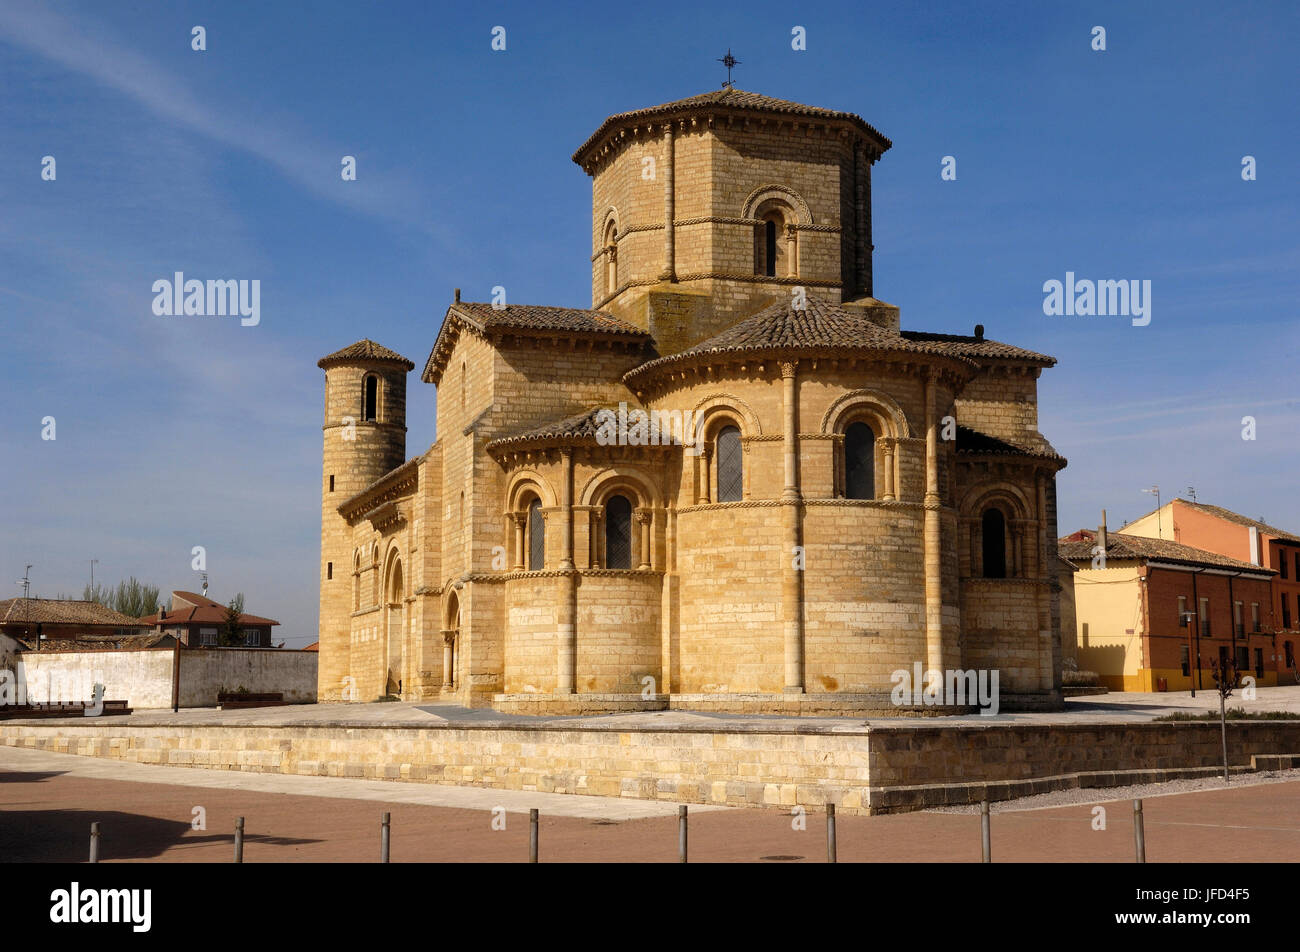 Romanesque church of San Martin de Tours, Fromista, Palencia province, Spain - Stock Image